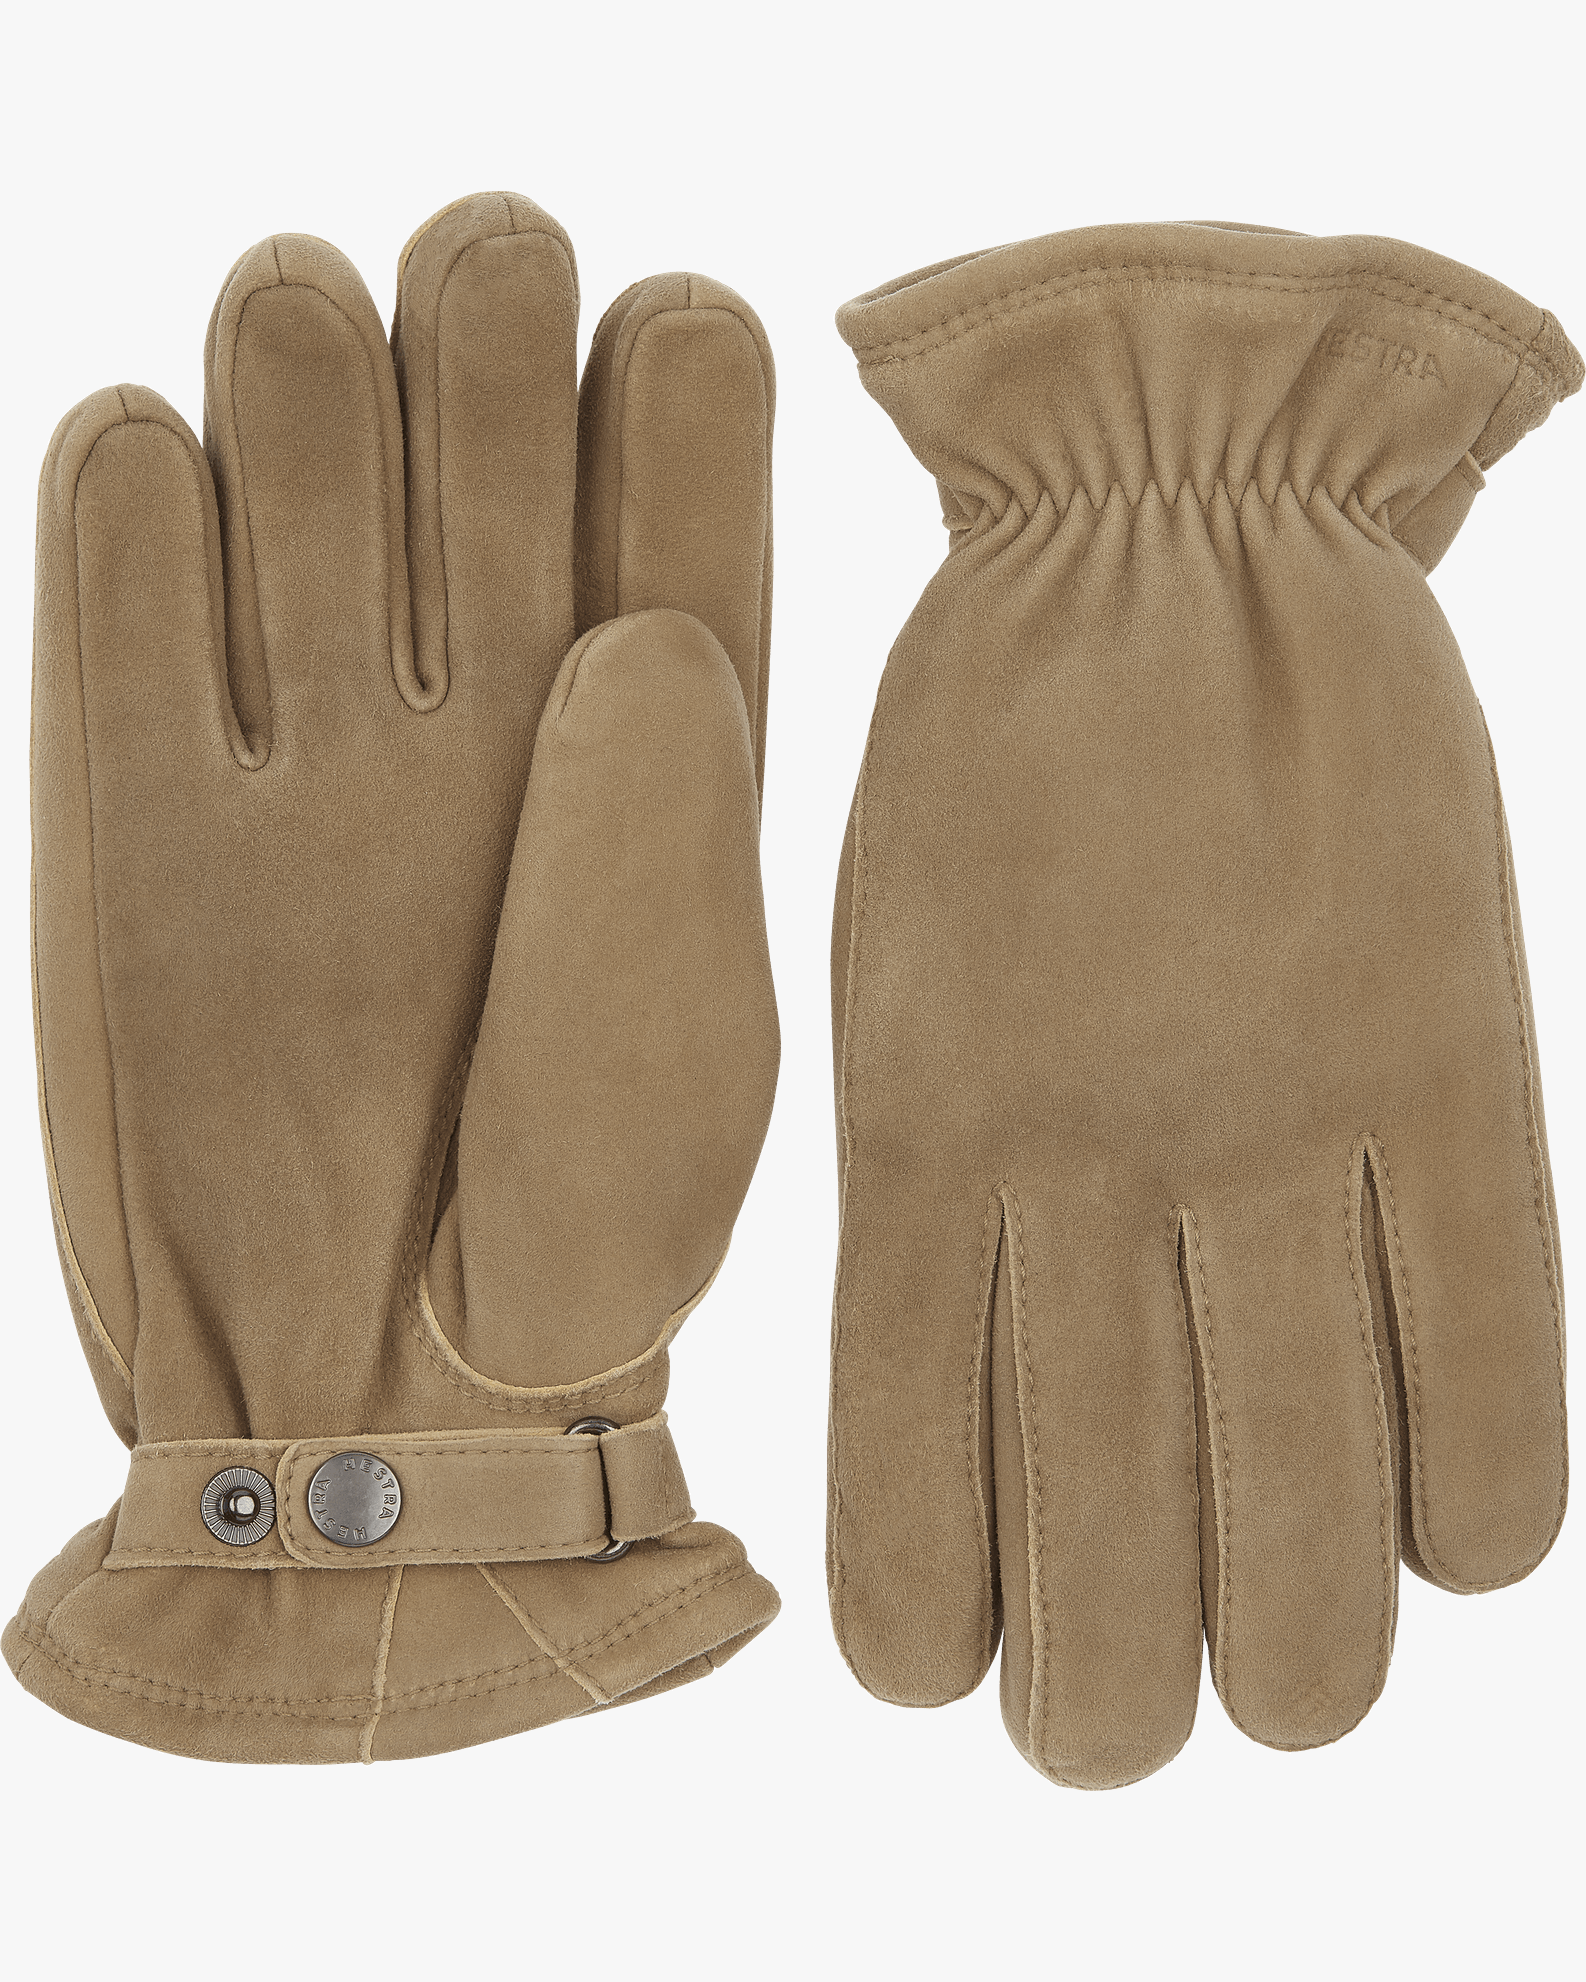 Hestra Torgil Chamois Suede Gloves - Natural Grey 7 25830-3007 7332904070319 Hestra Gloves